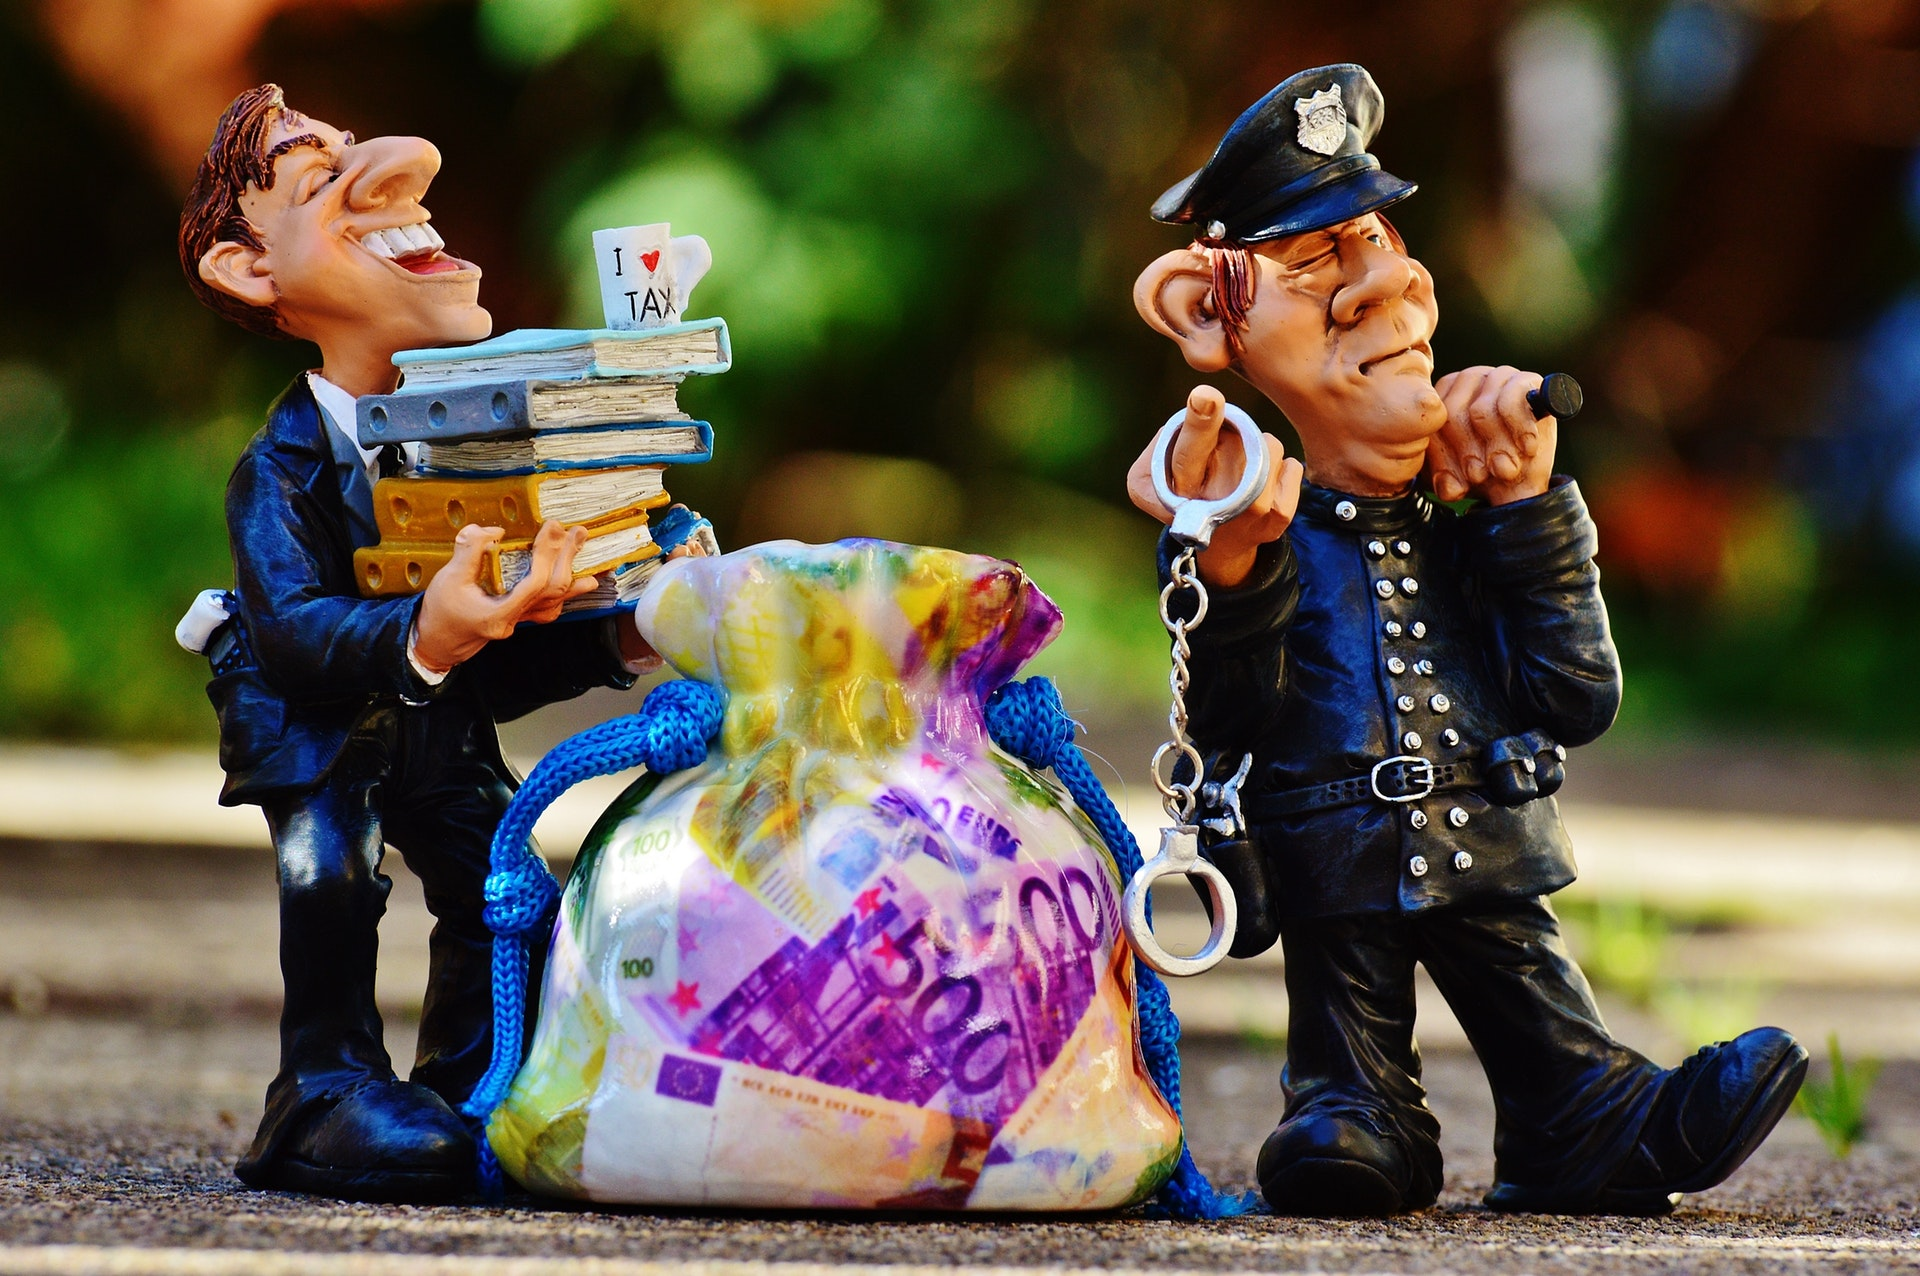 Carrying all that money must be taxing work for HMRC  (image by    Djordje Petrovic   )